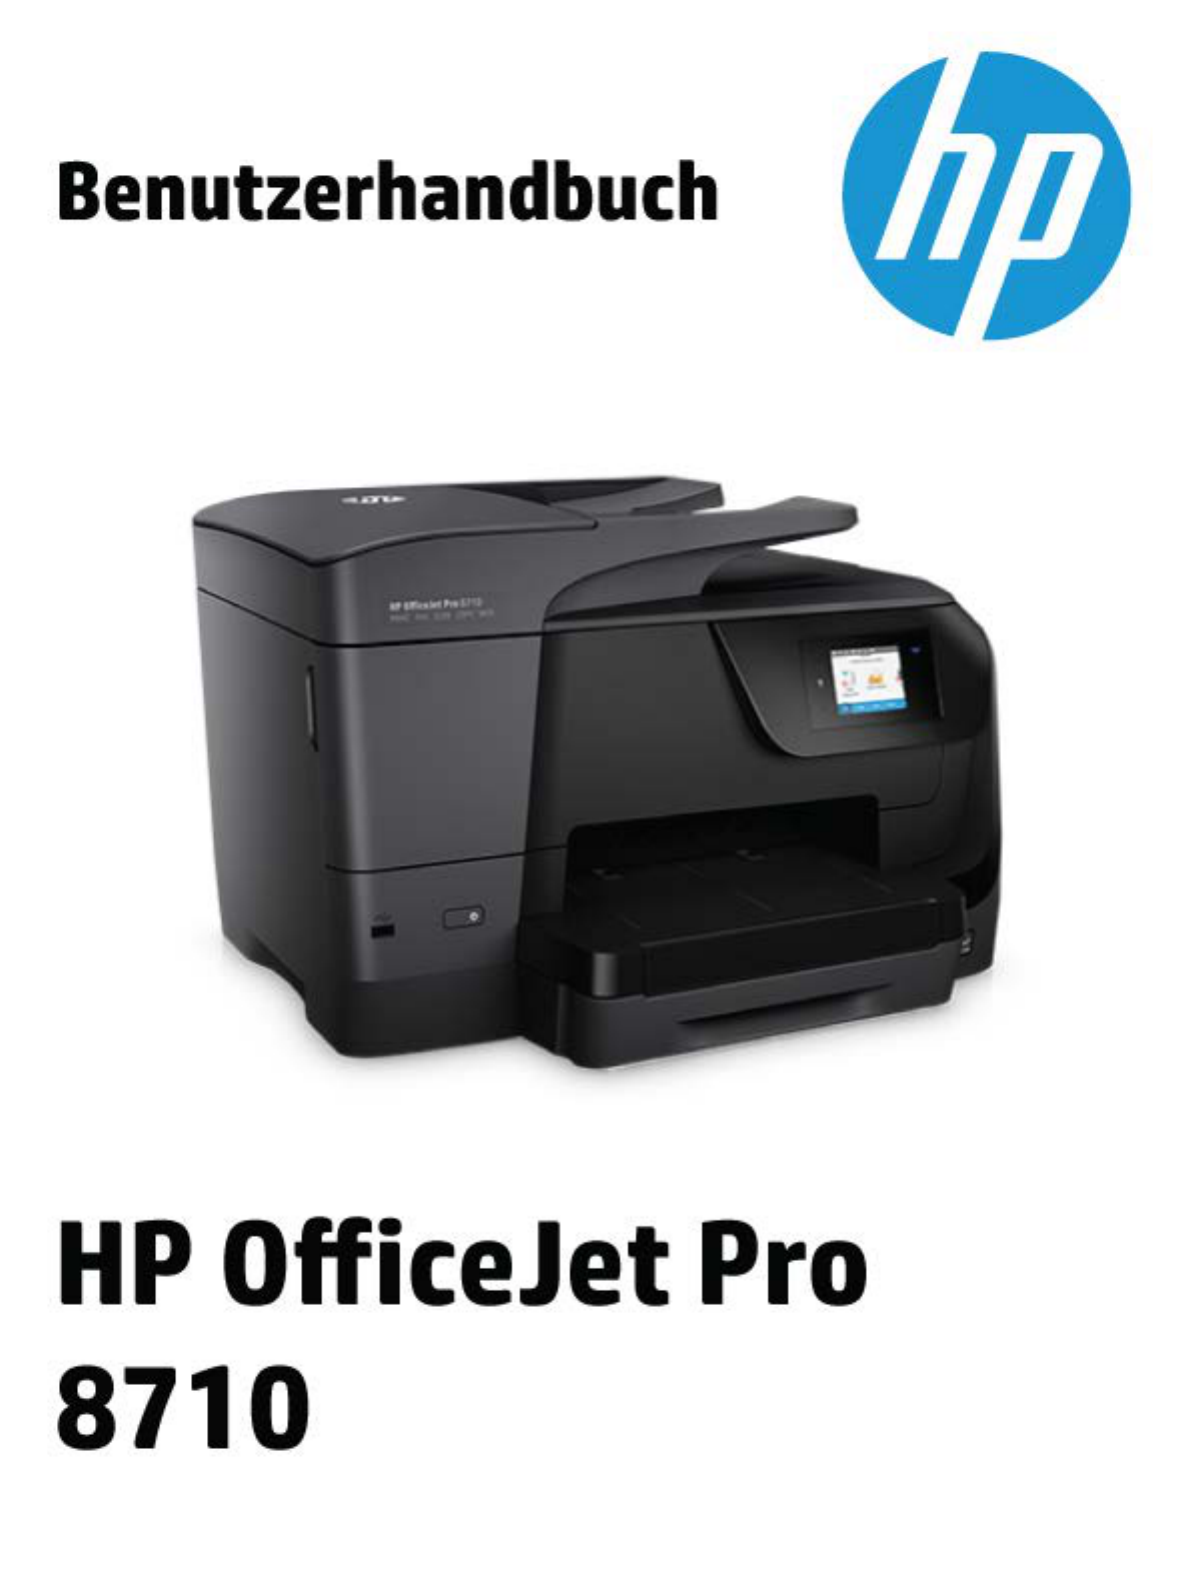 bedienungsanleitung hp hp officejet pro 8710 all in one seite 1 von 198 deutsch. Black Bedroom Furniture Sets. Home Design Ideas